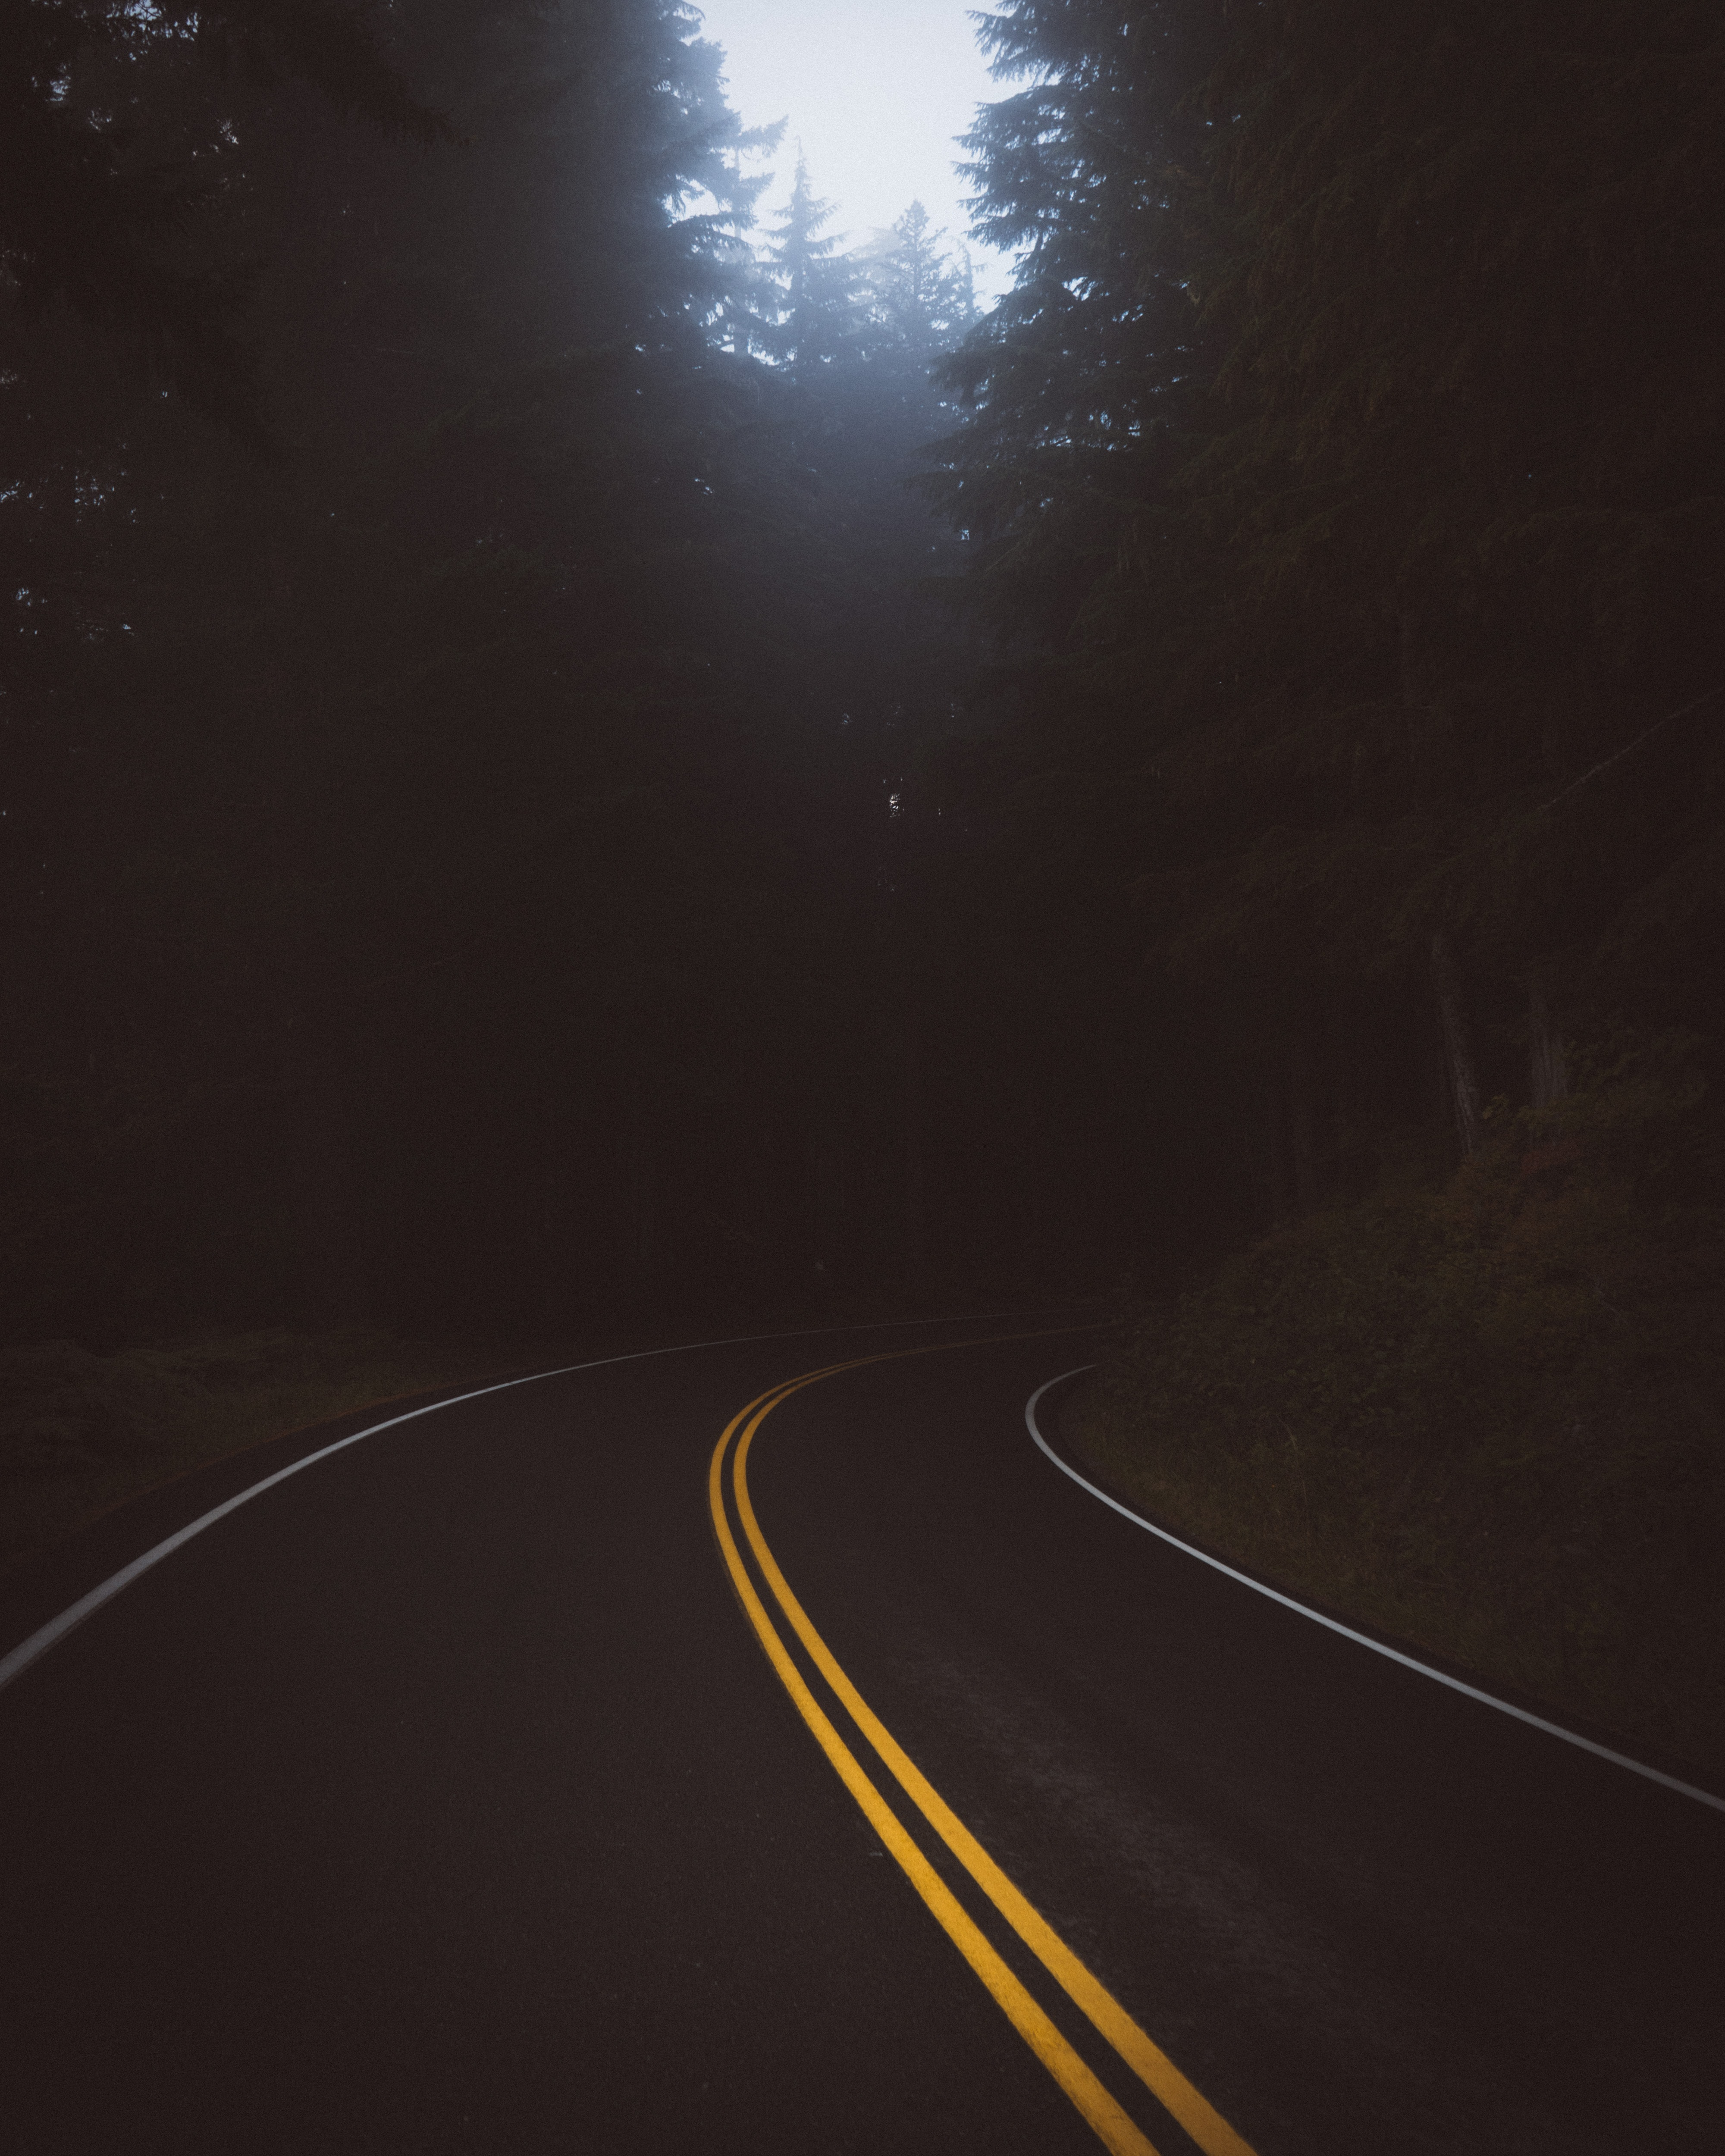 empty road curvature surrounded by trees